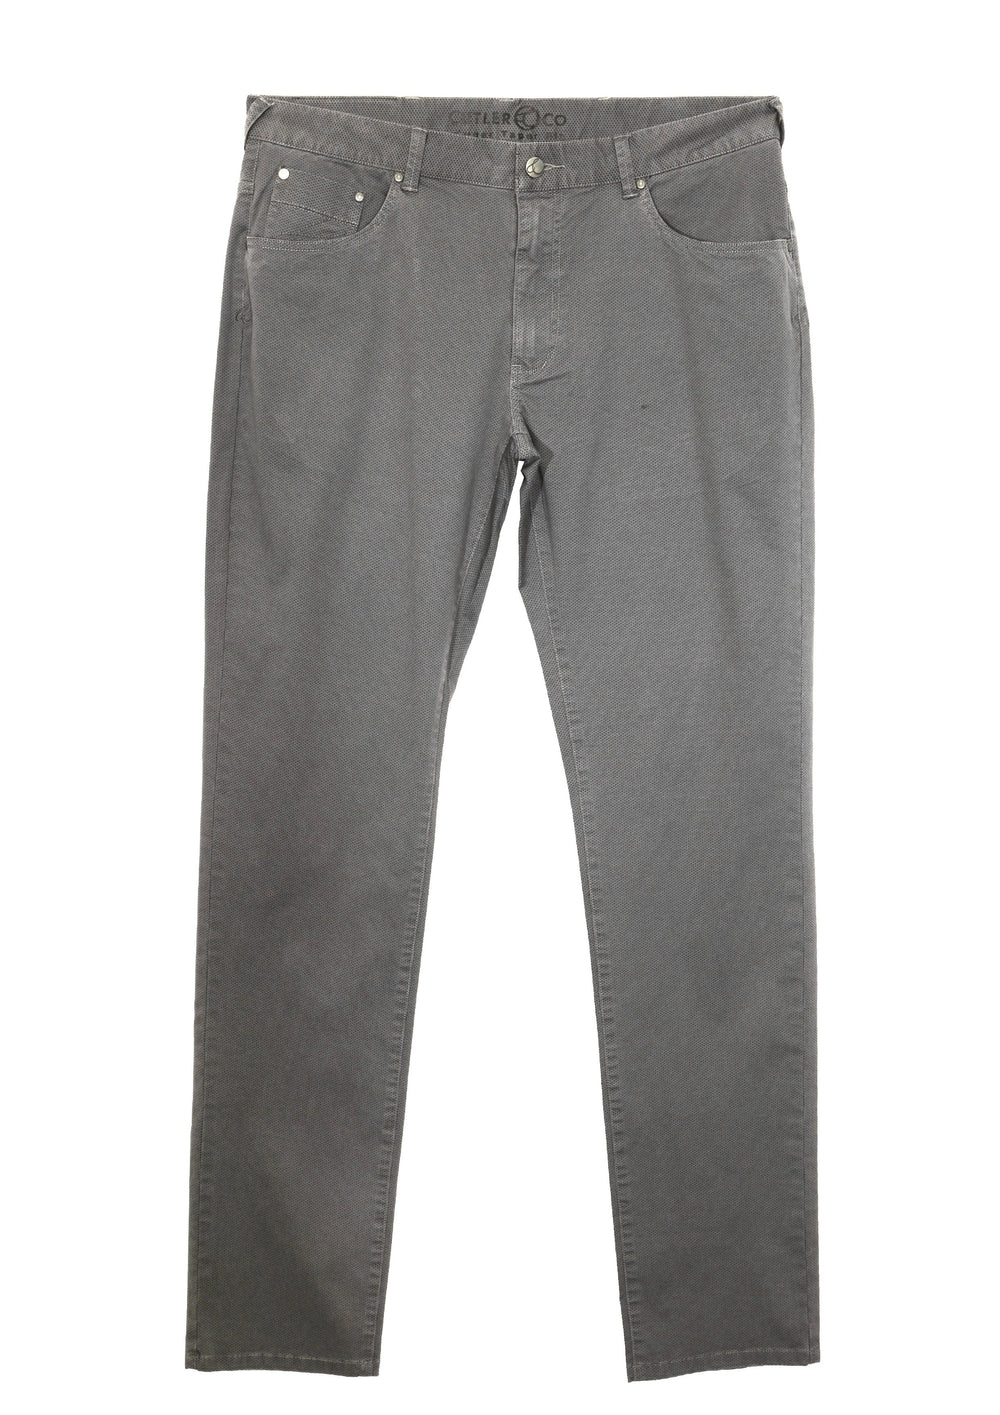 Cutler Clarke Trouser CR10249